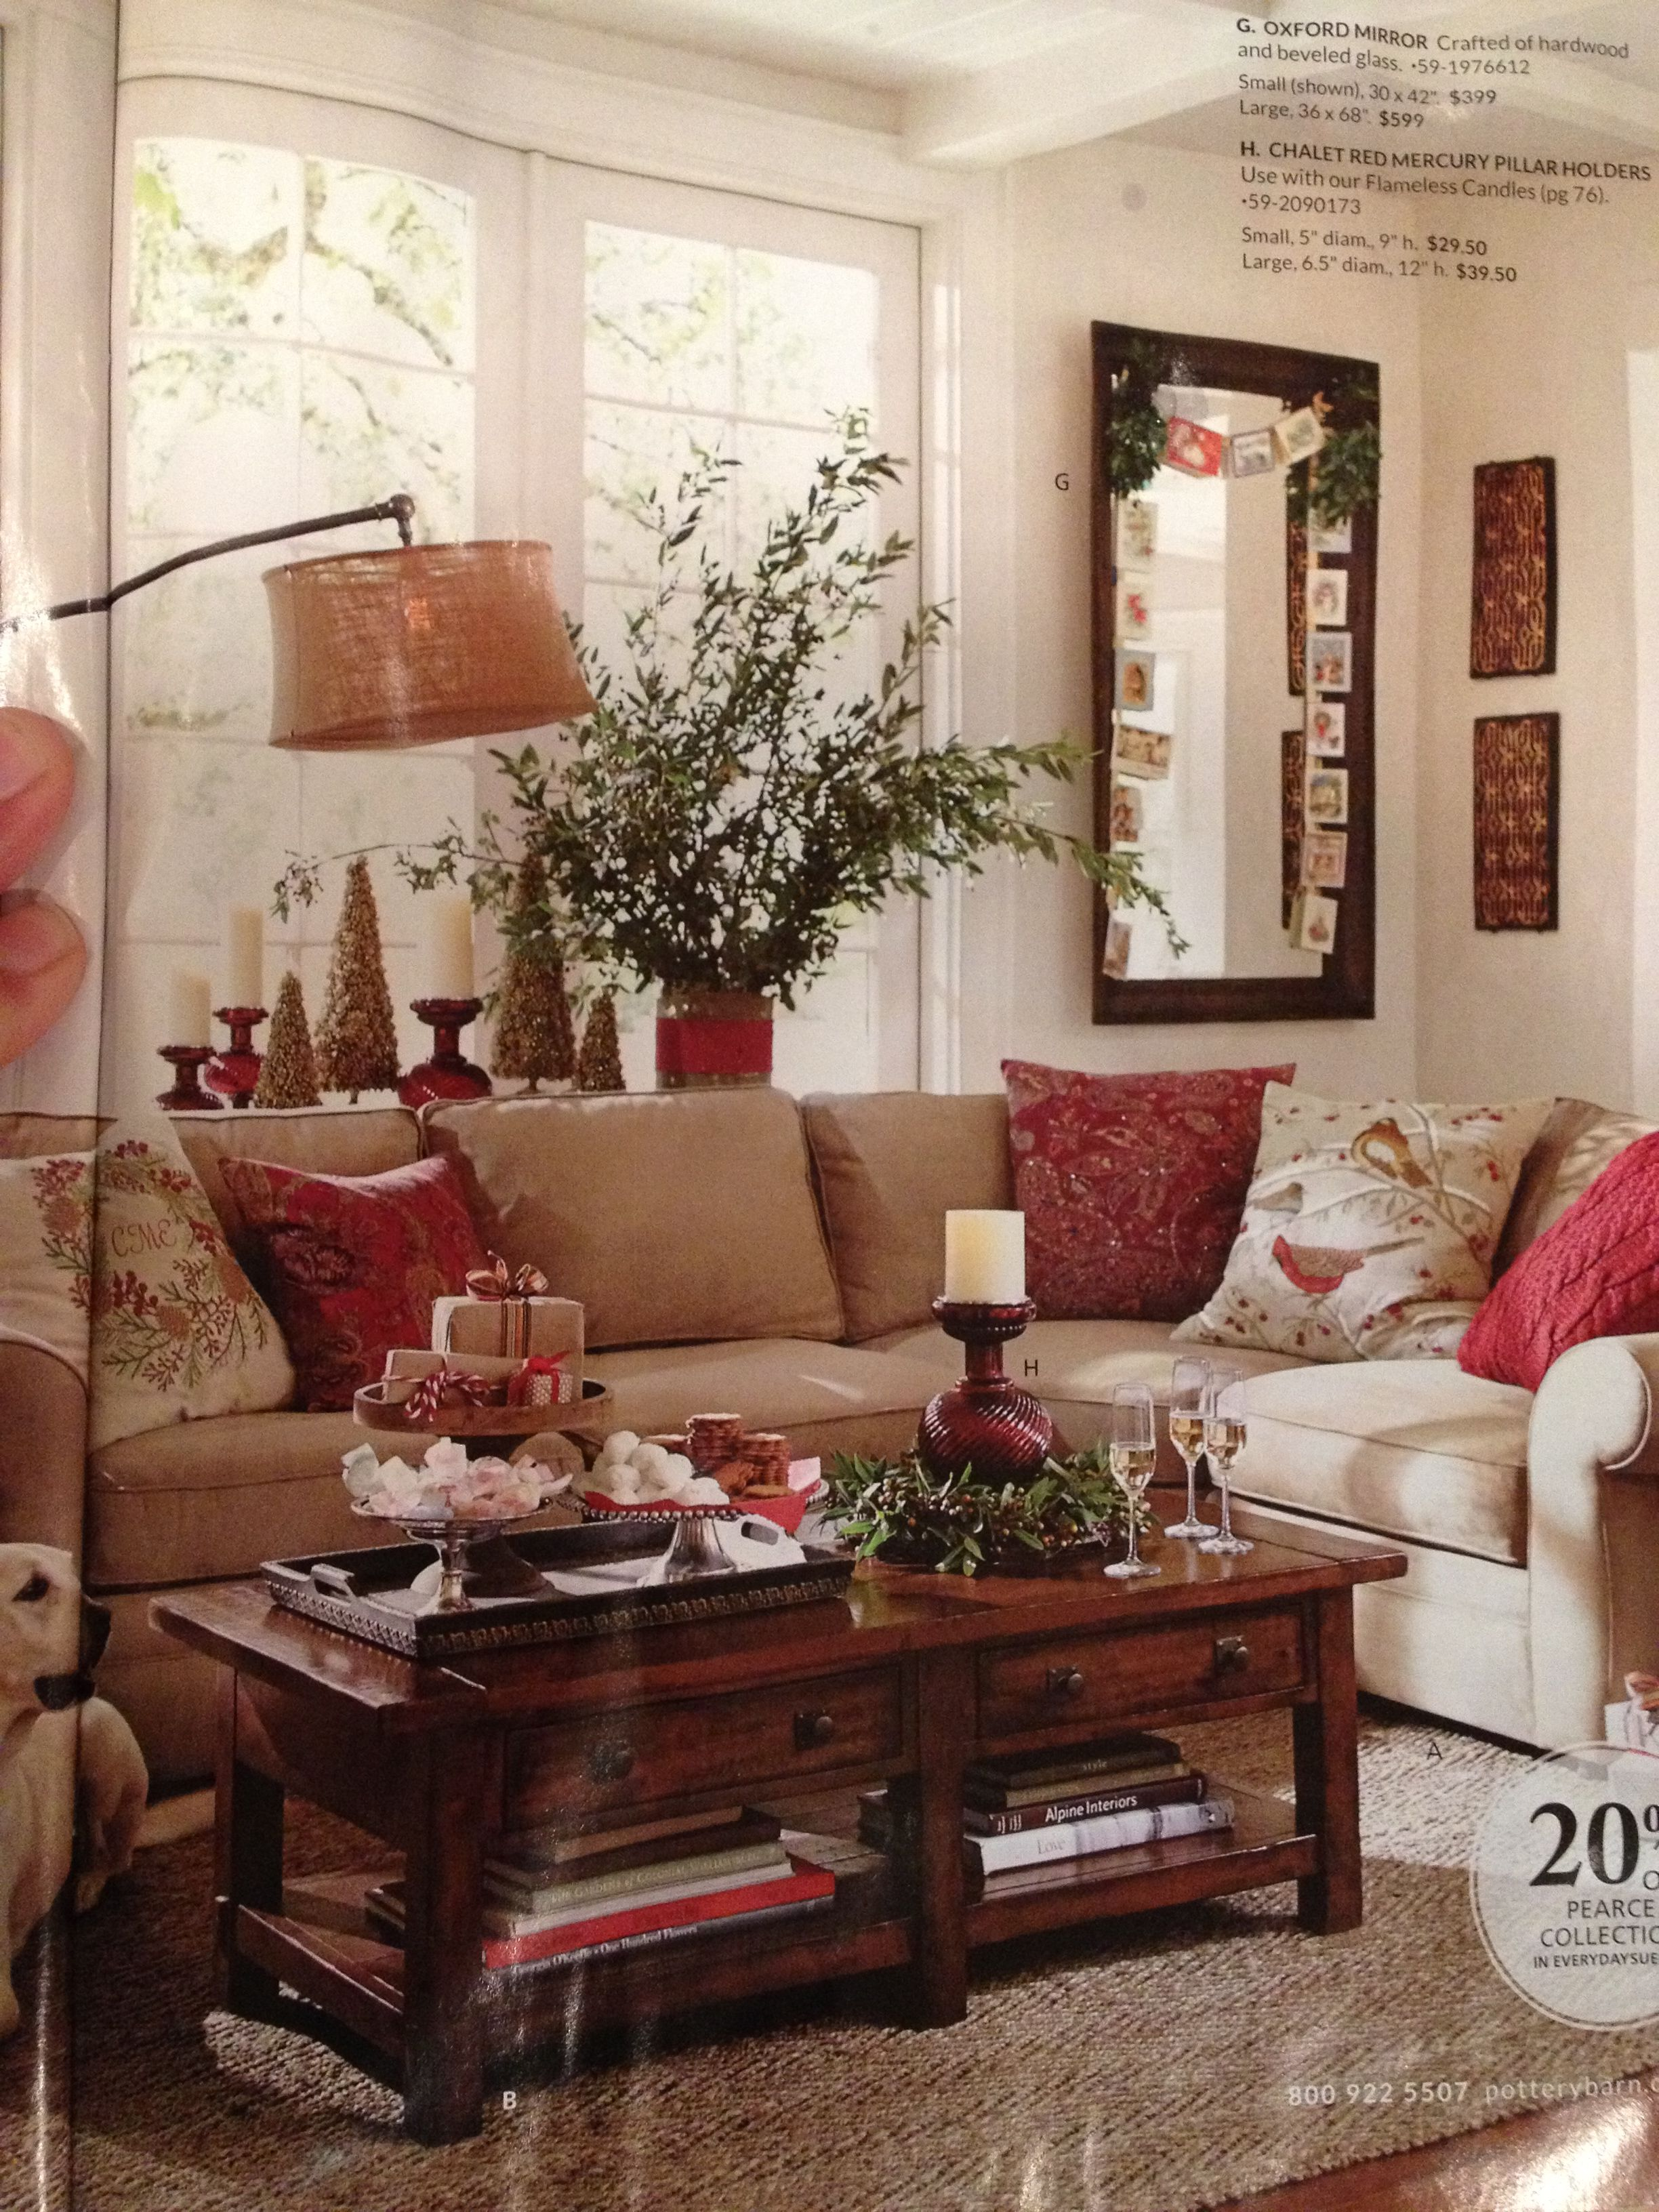 Red Living Room Design Ideas: Deep Red And Neutral Color Scheme From Pottery Barn Nov